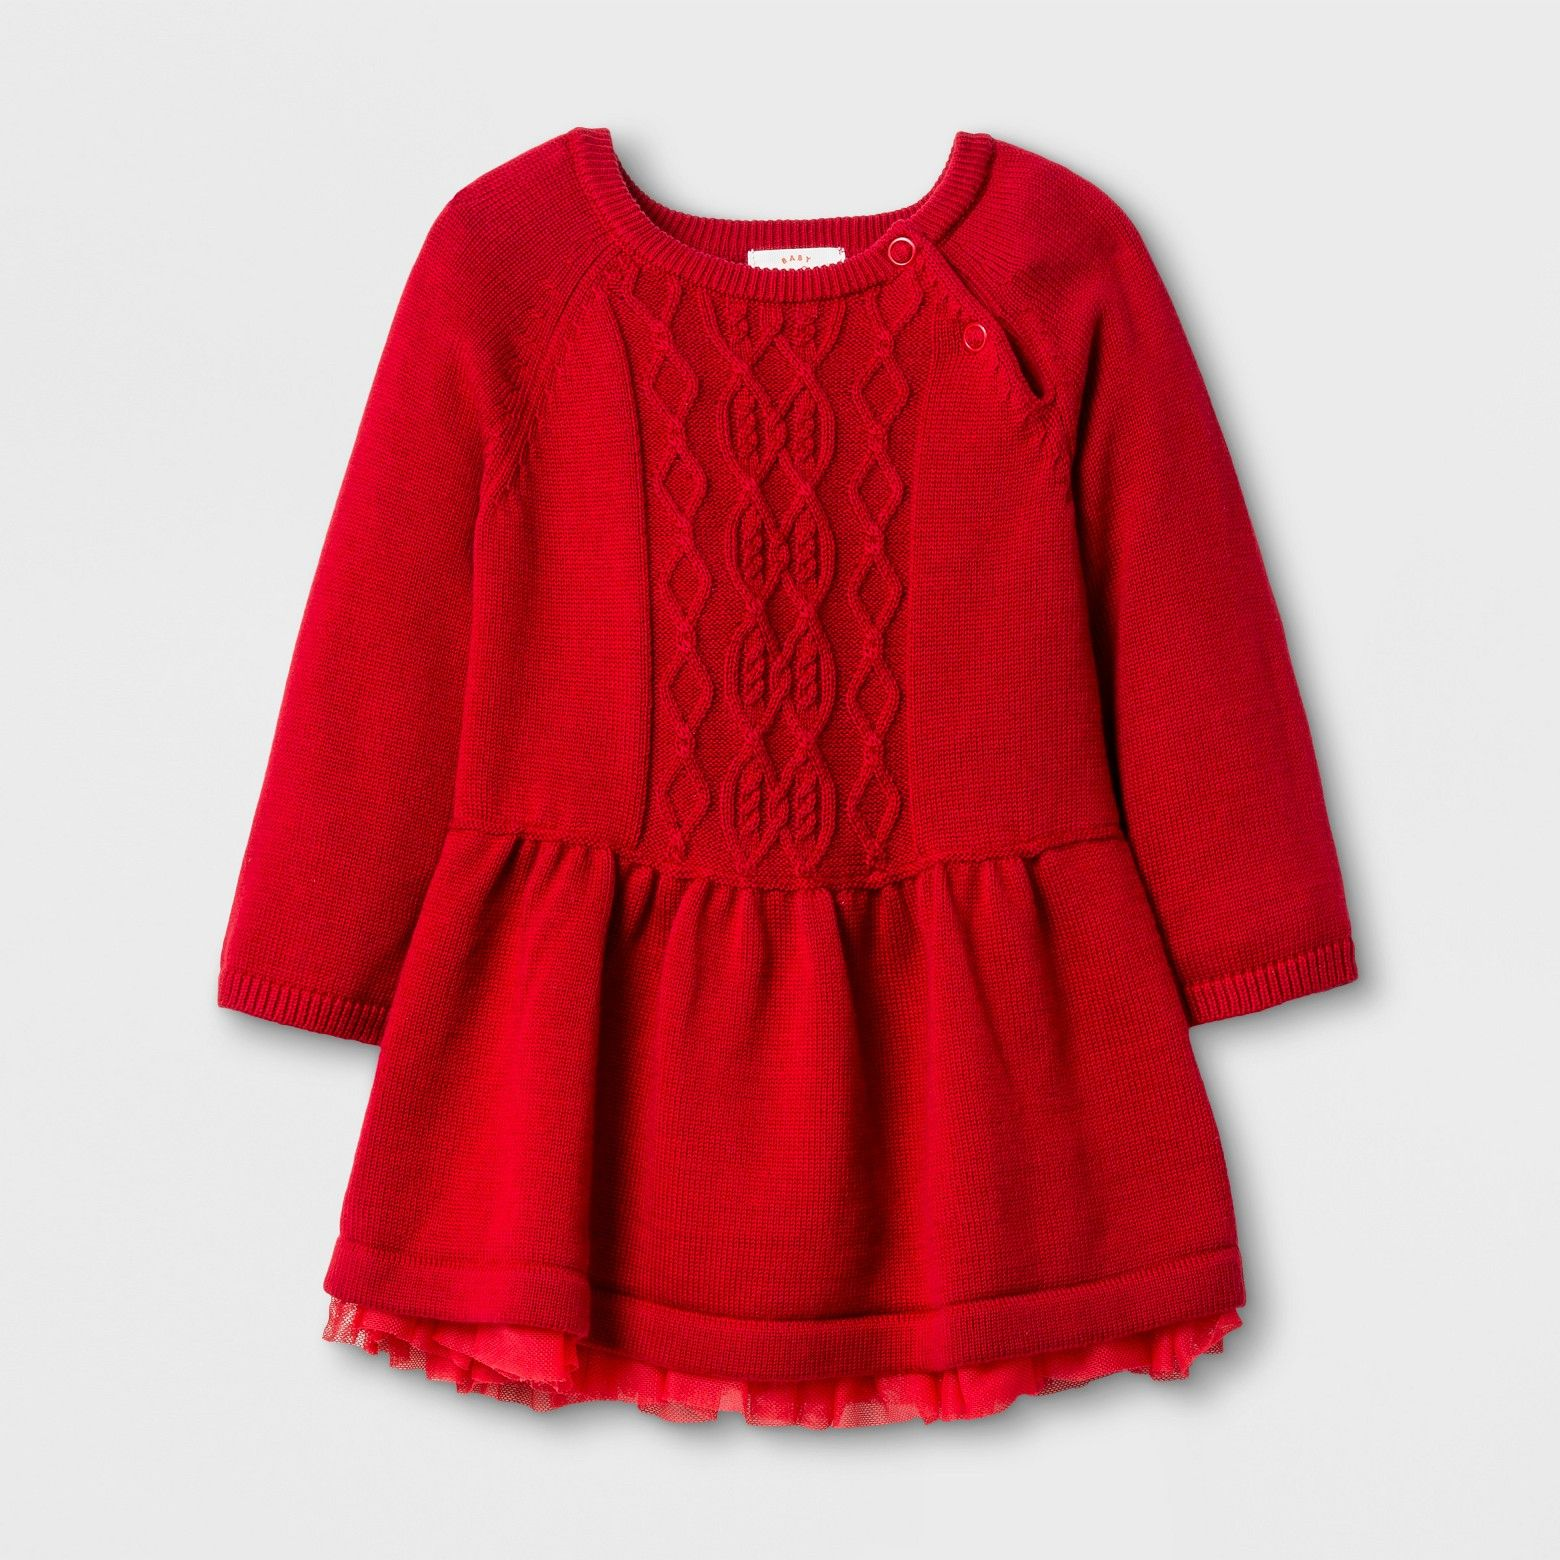 Baby Girls Dress With Sweater Set Cat Jack Red Velvet Target Red Cable Knit Sweater Dress Fashion Baby Girl Outfits Red Sweater Dress [ 1560 x 1560 Pixel ]